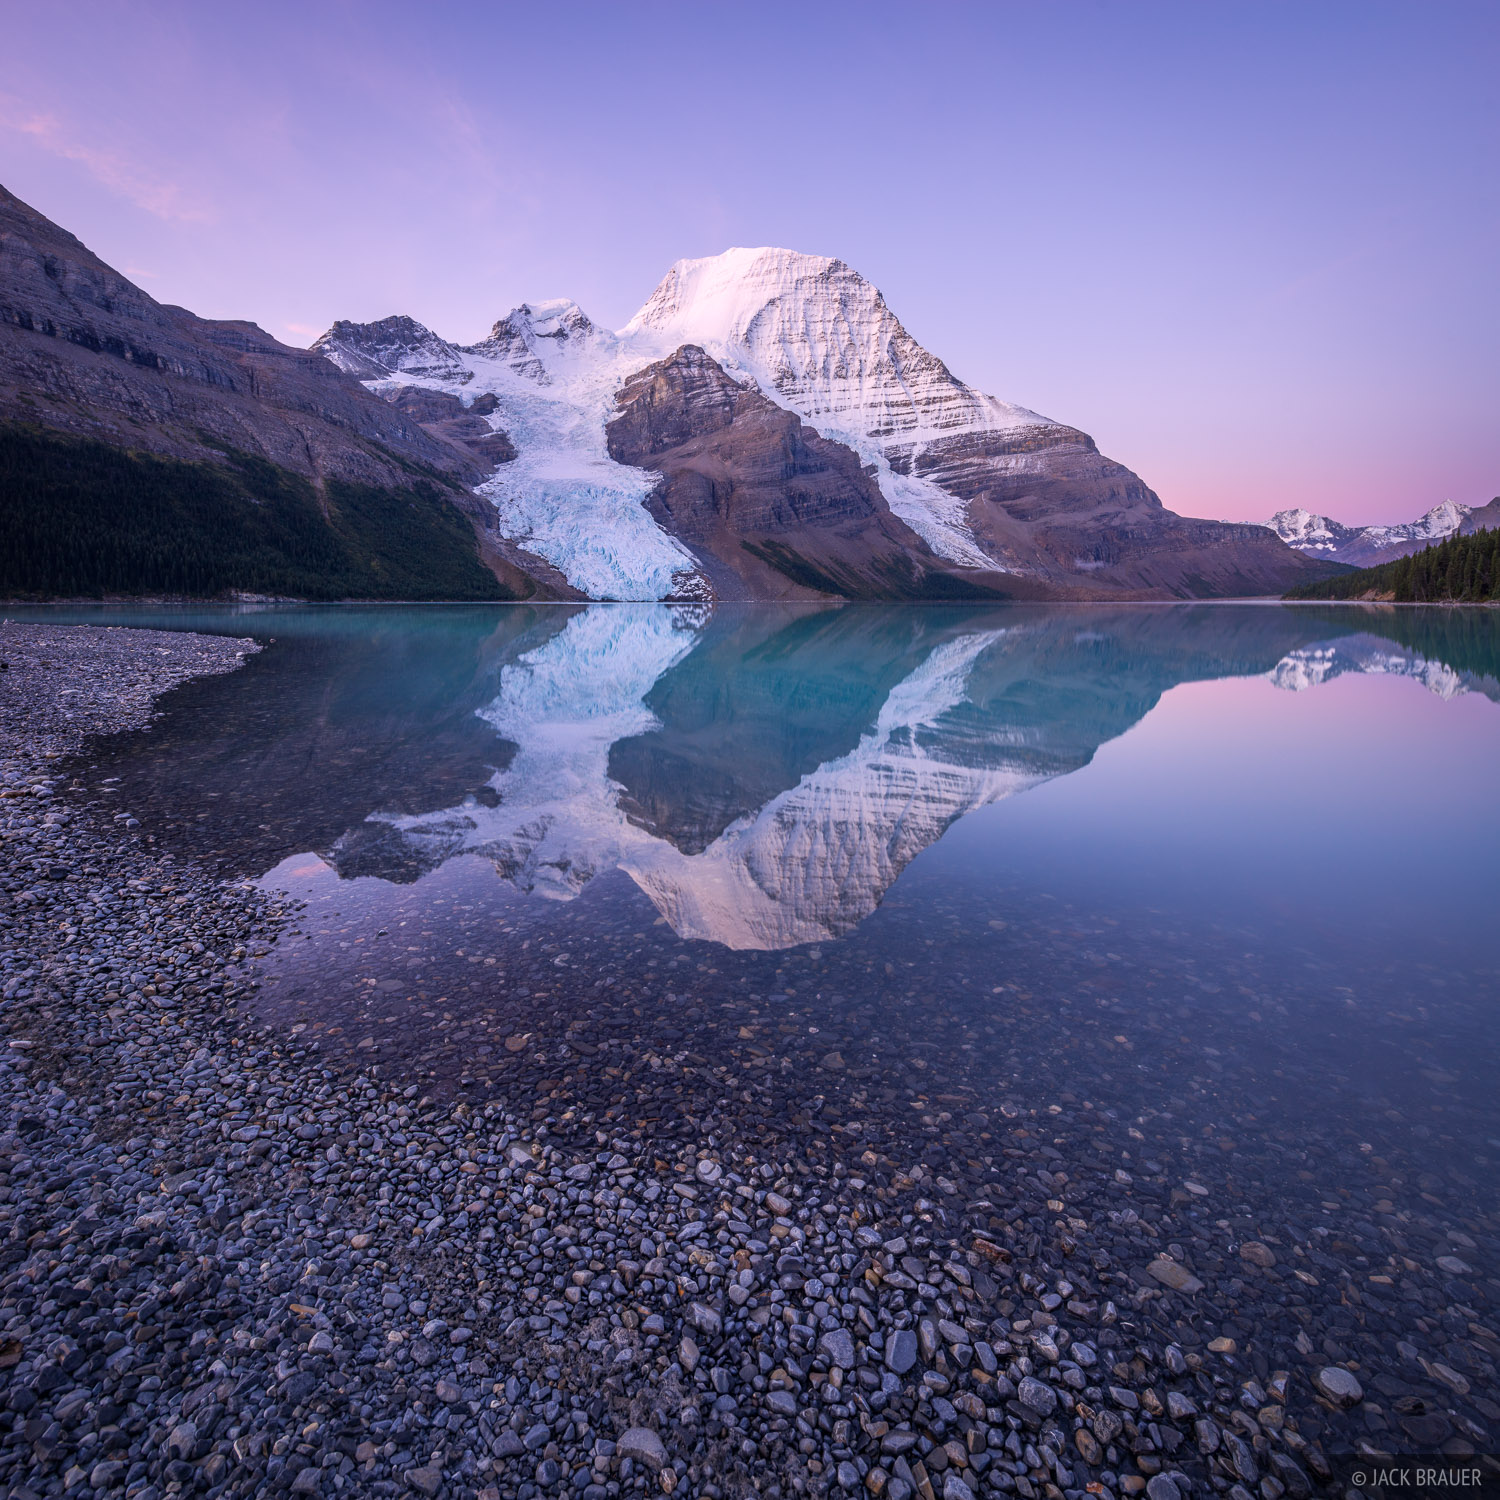 Mount Robson and the Berg Glacier reflect in the calm water of Berg Lake at sunrise.